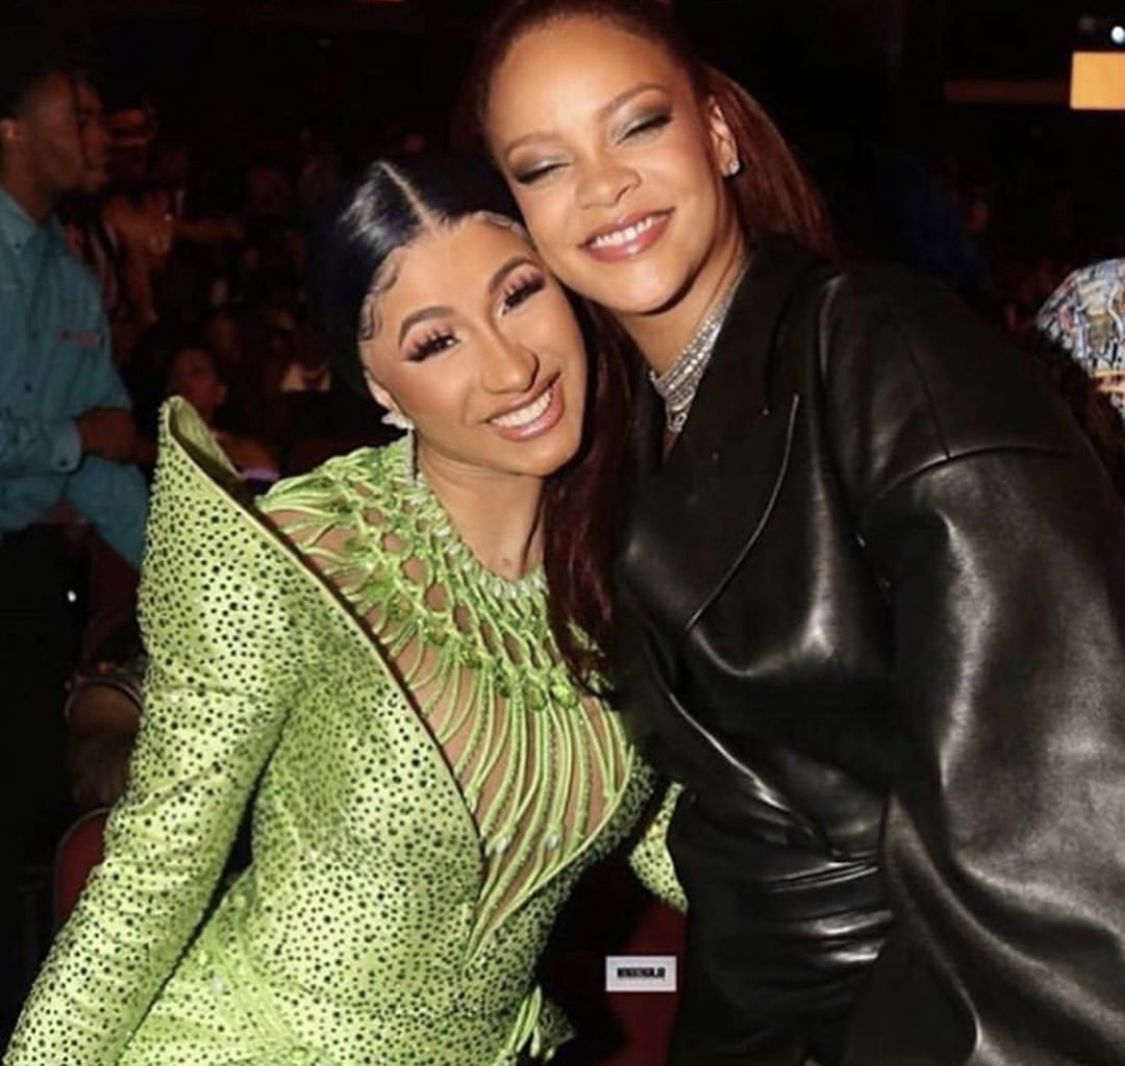 Cardi B says she wants to be a billionaire like Rihanna  McKoysNews